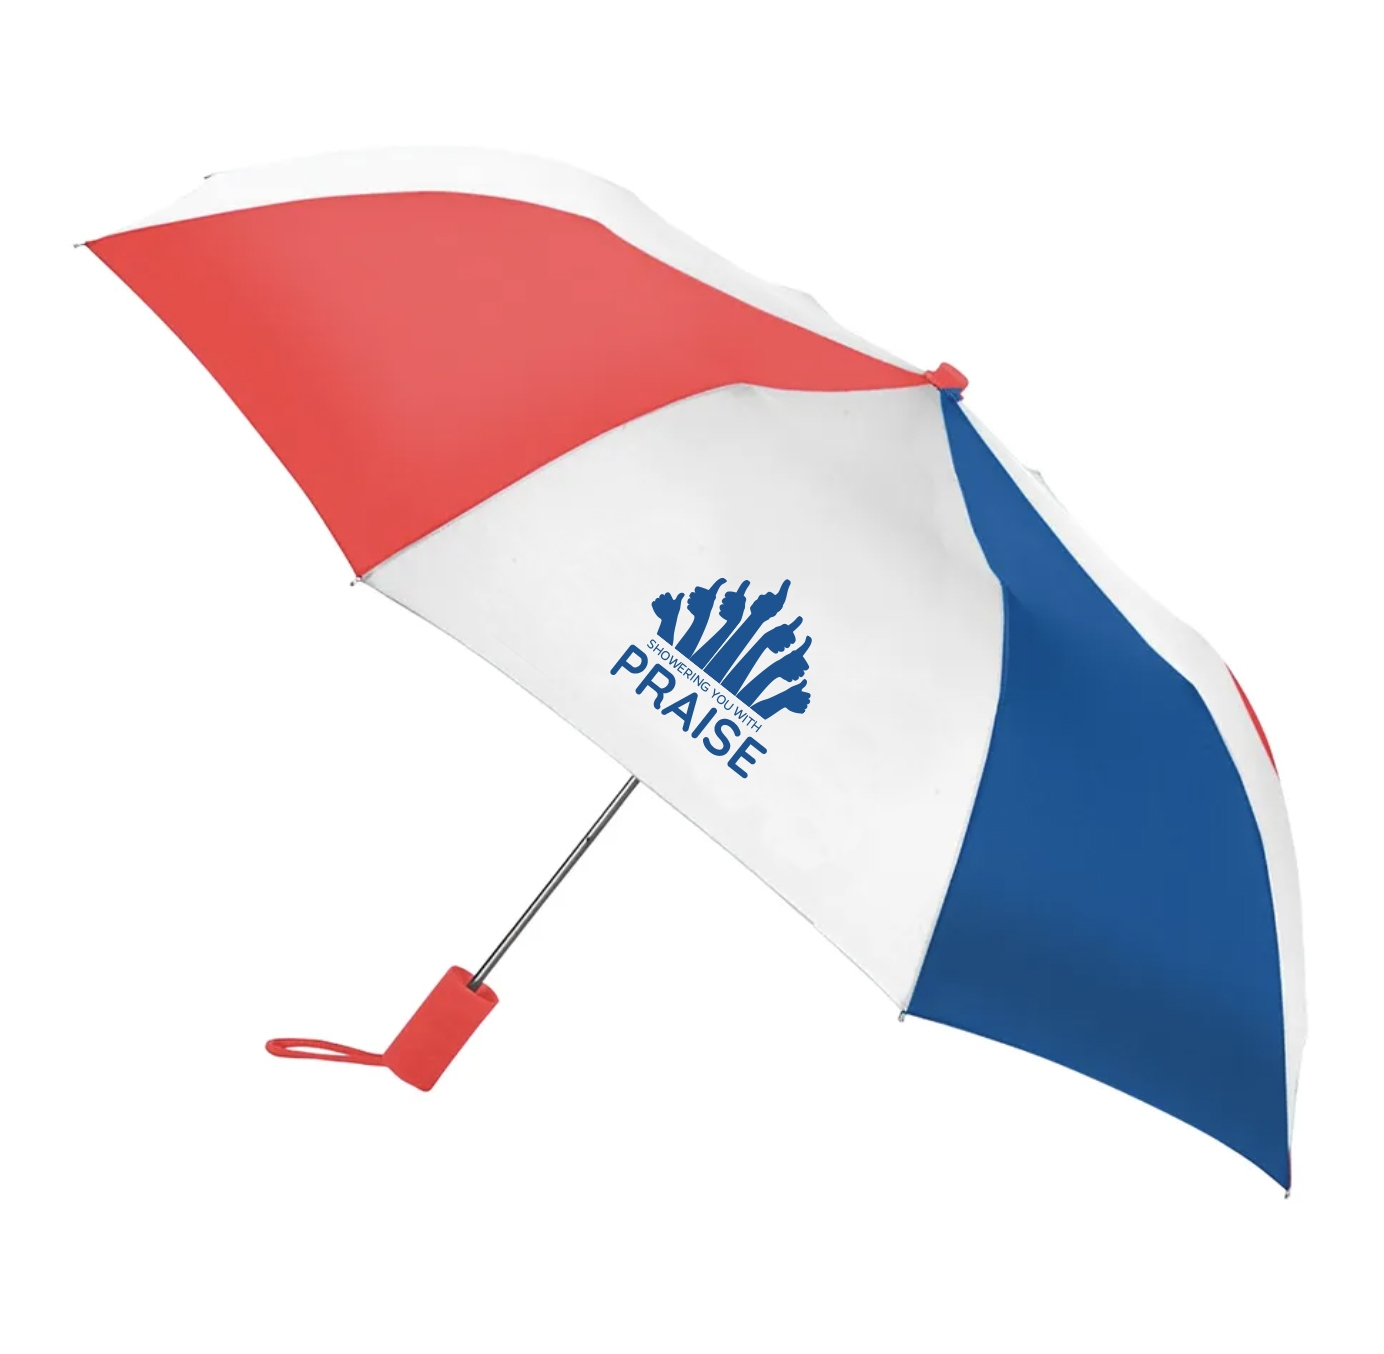 Red white and blue umbrella with appreciation saying